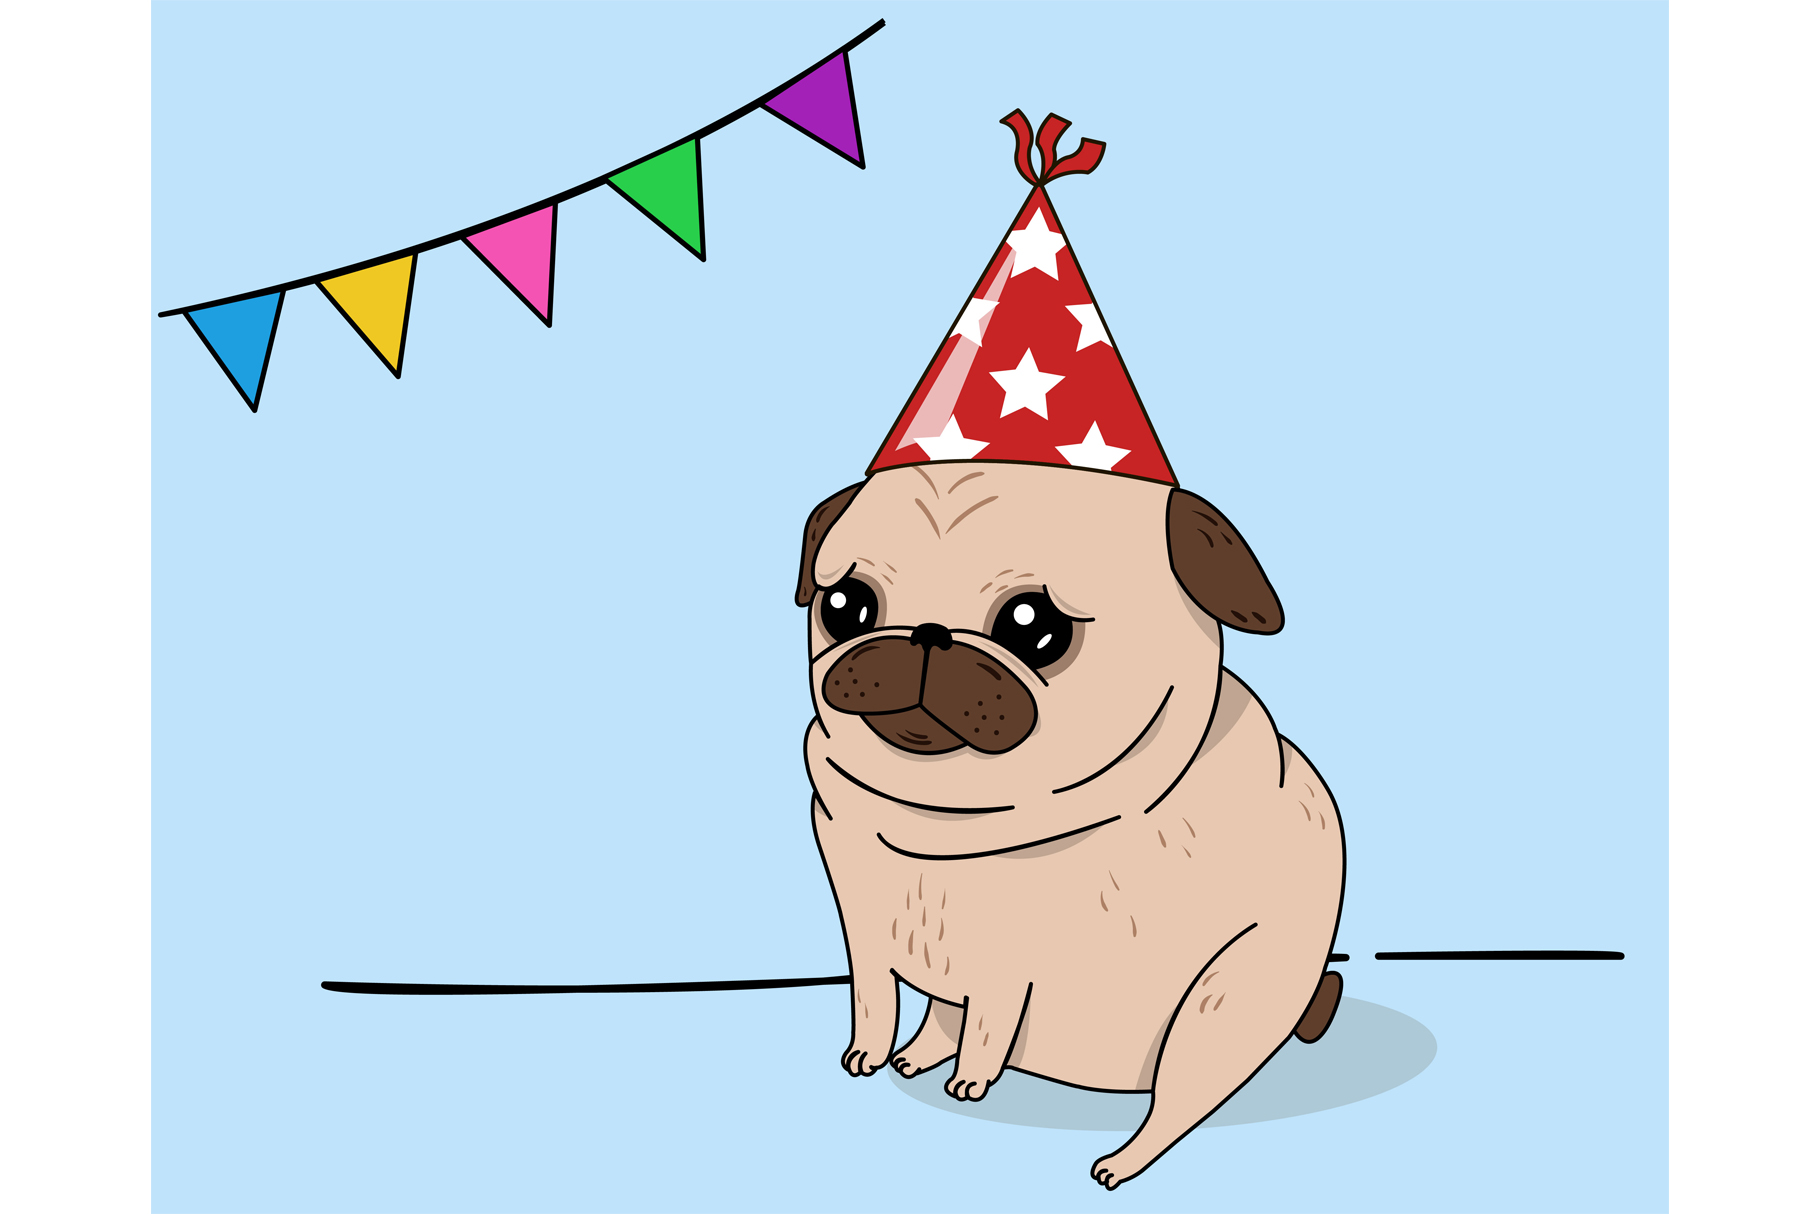 Download Free Birthday Pug Graphic By Sasha Brazhnik Creative Fabrica for Cricut Explore, Silhouette and other cutting machines.